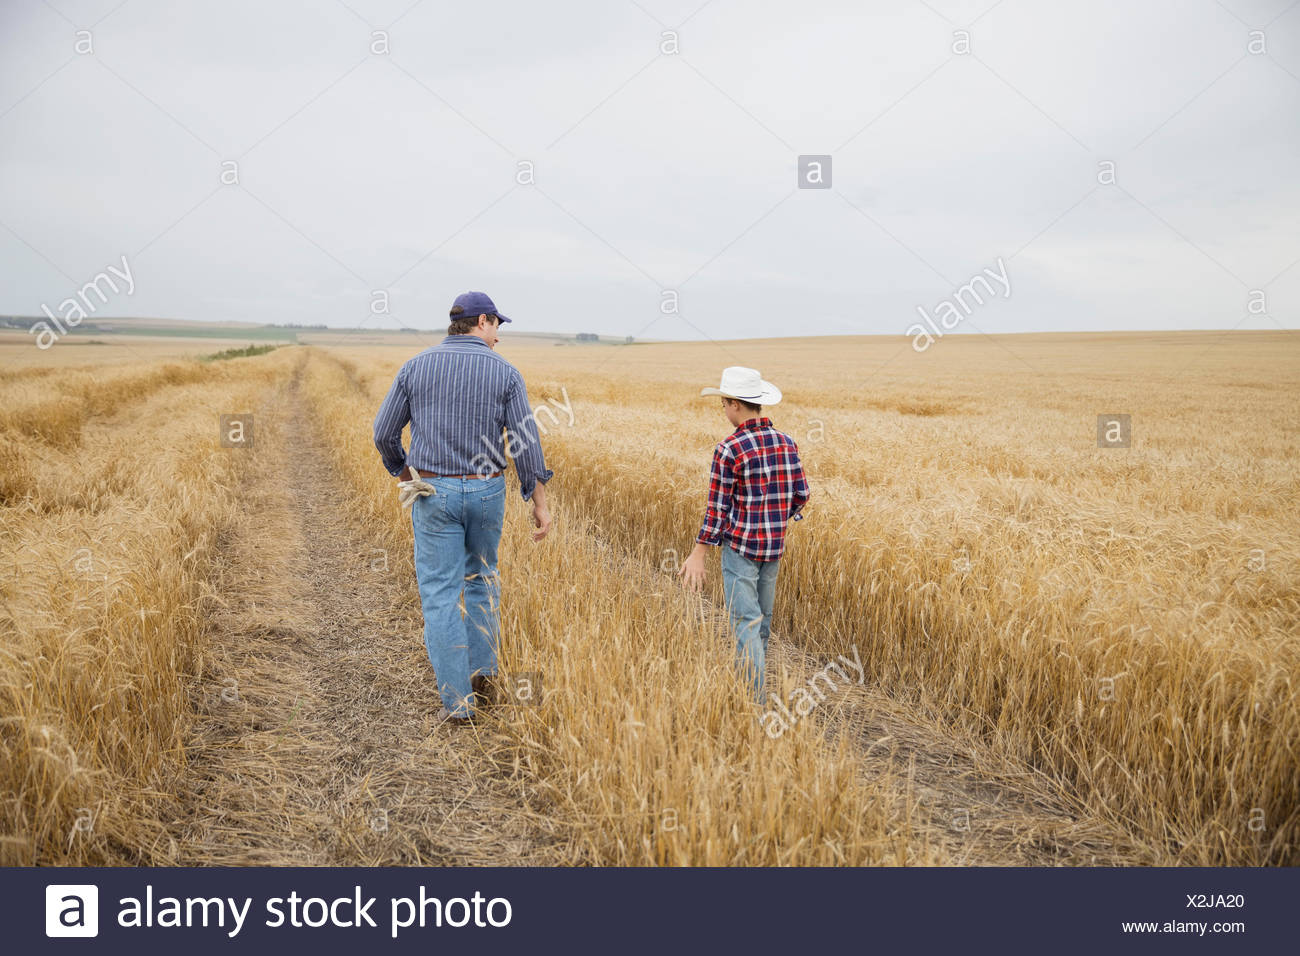 Father and son walking down lane through field - Stock Image